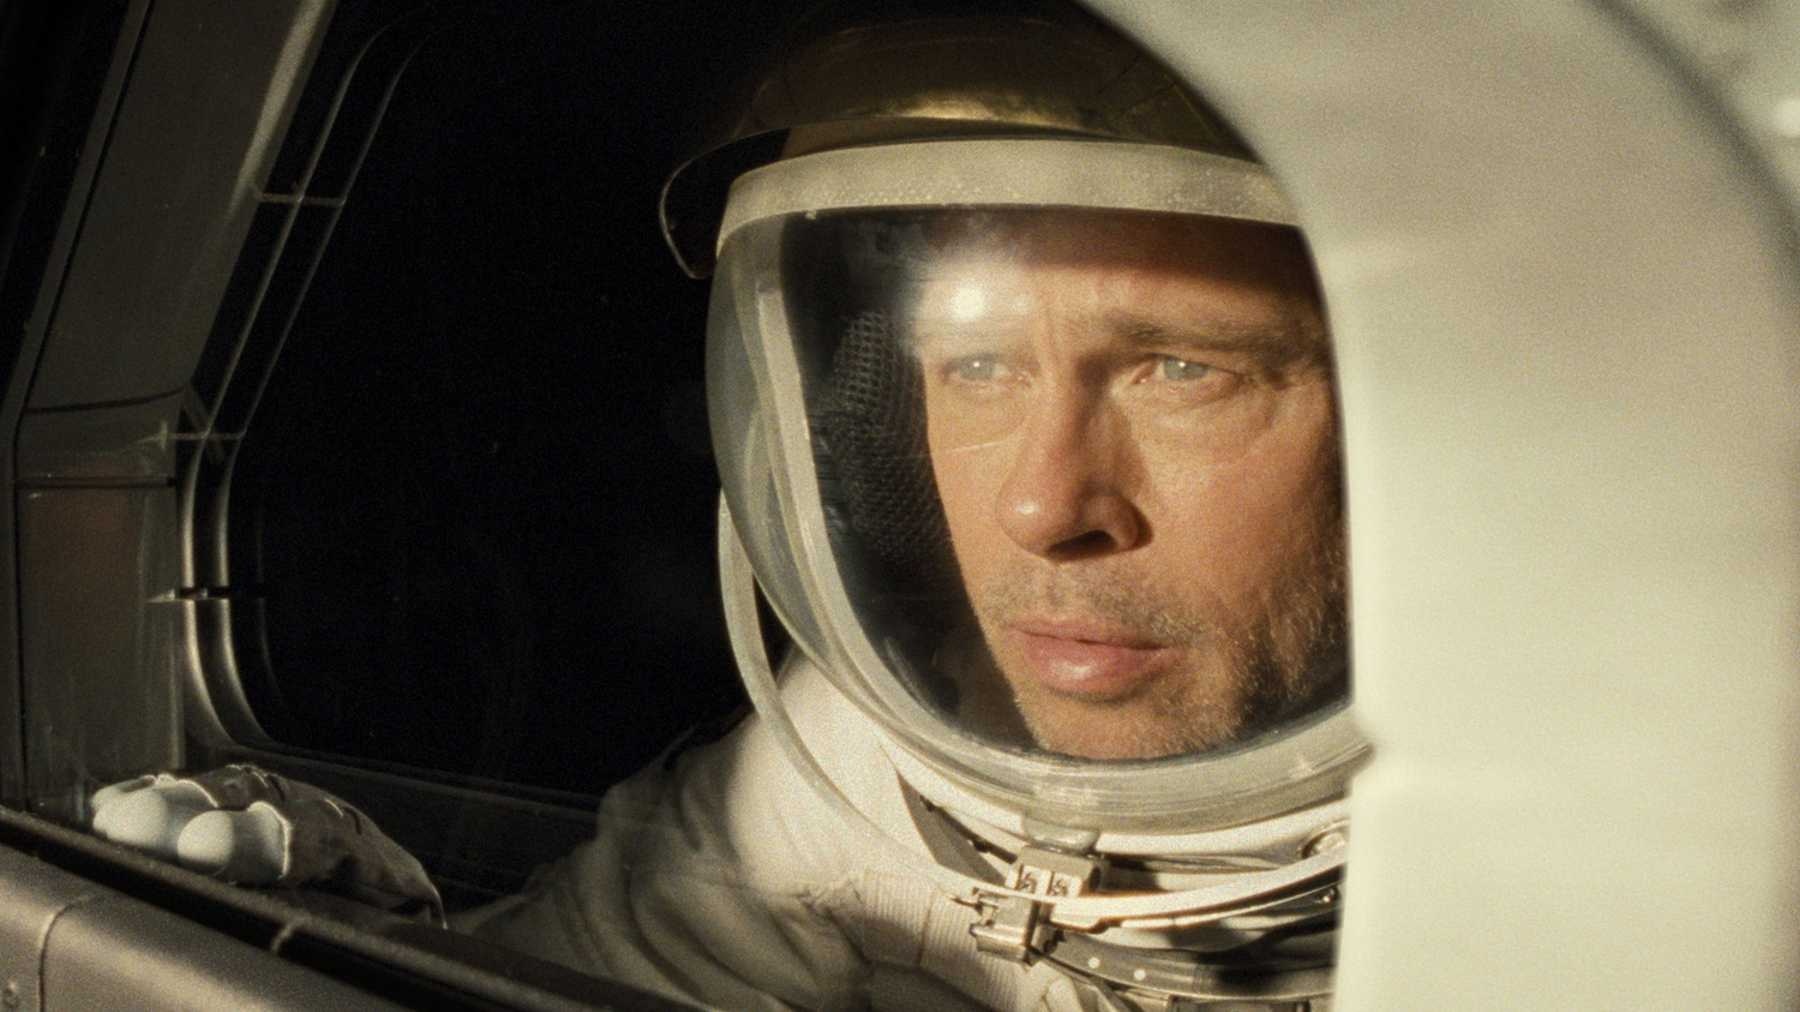 Ad Astra is about lonely Brad Pitt in space. It's also about an absent God.